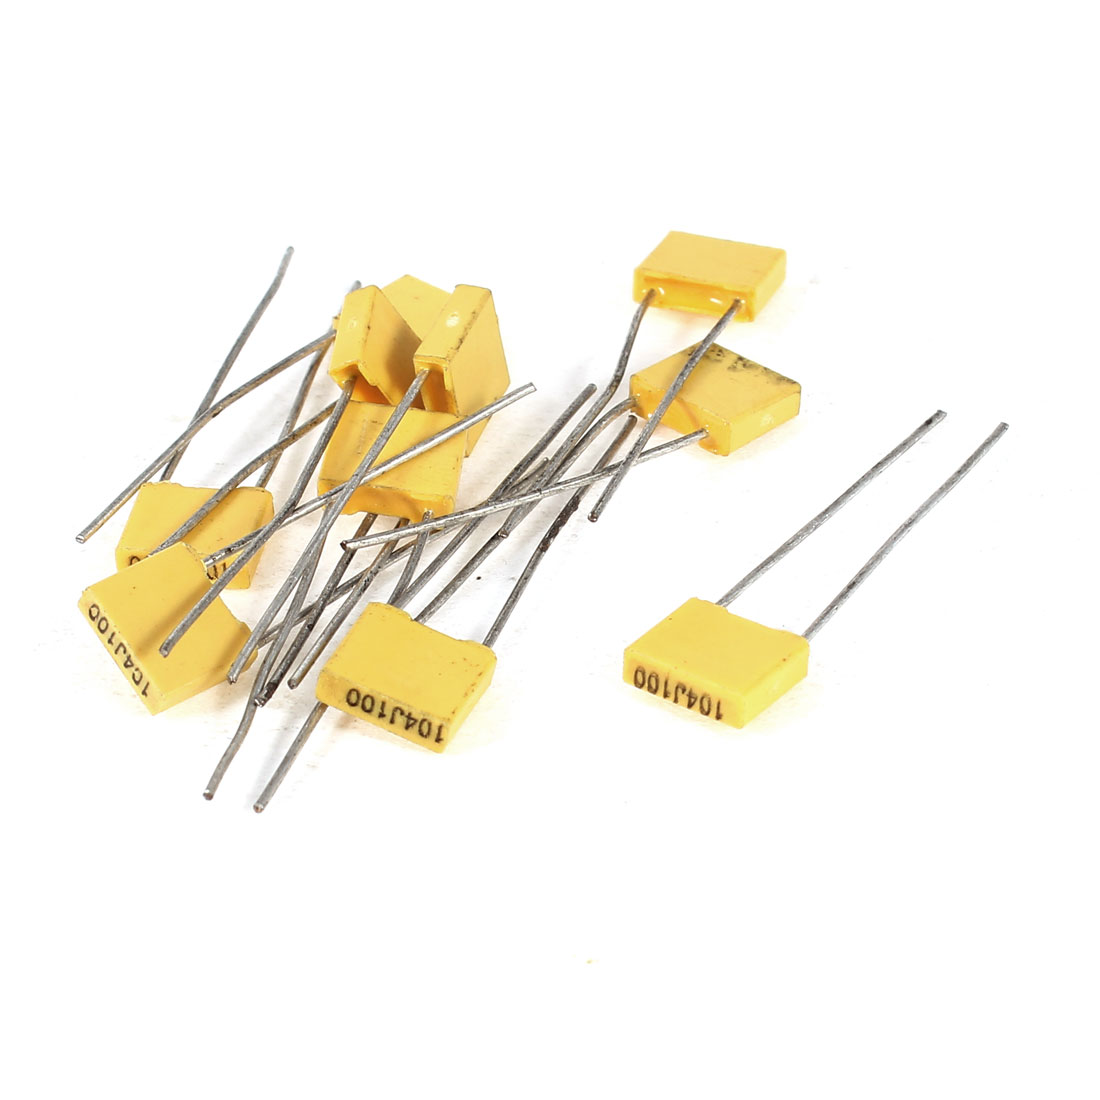 10 Pcs 104J100 0.1uF 100V Radial Leads Polyester Film Box Type Correction Capacitors